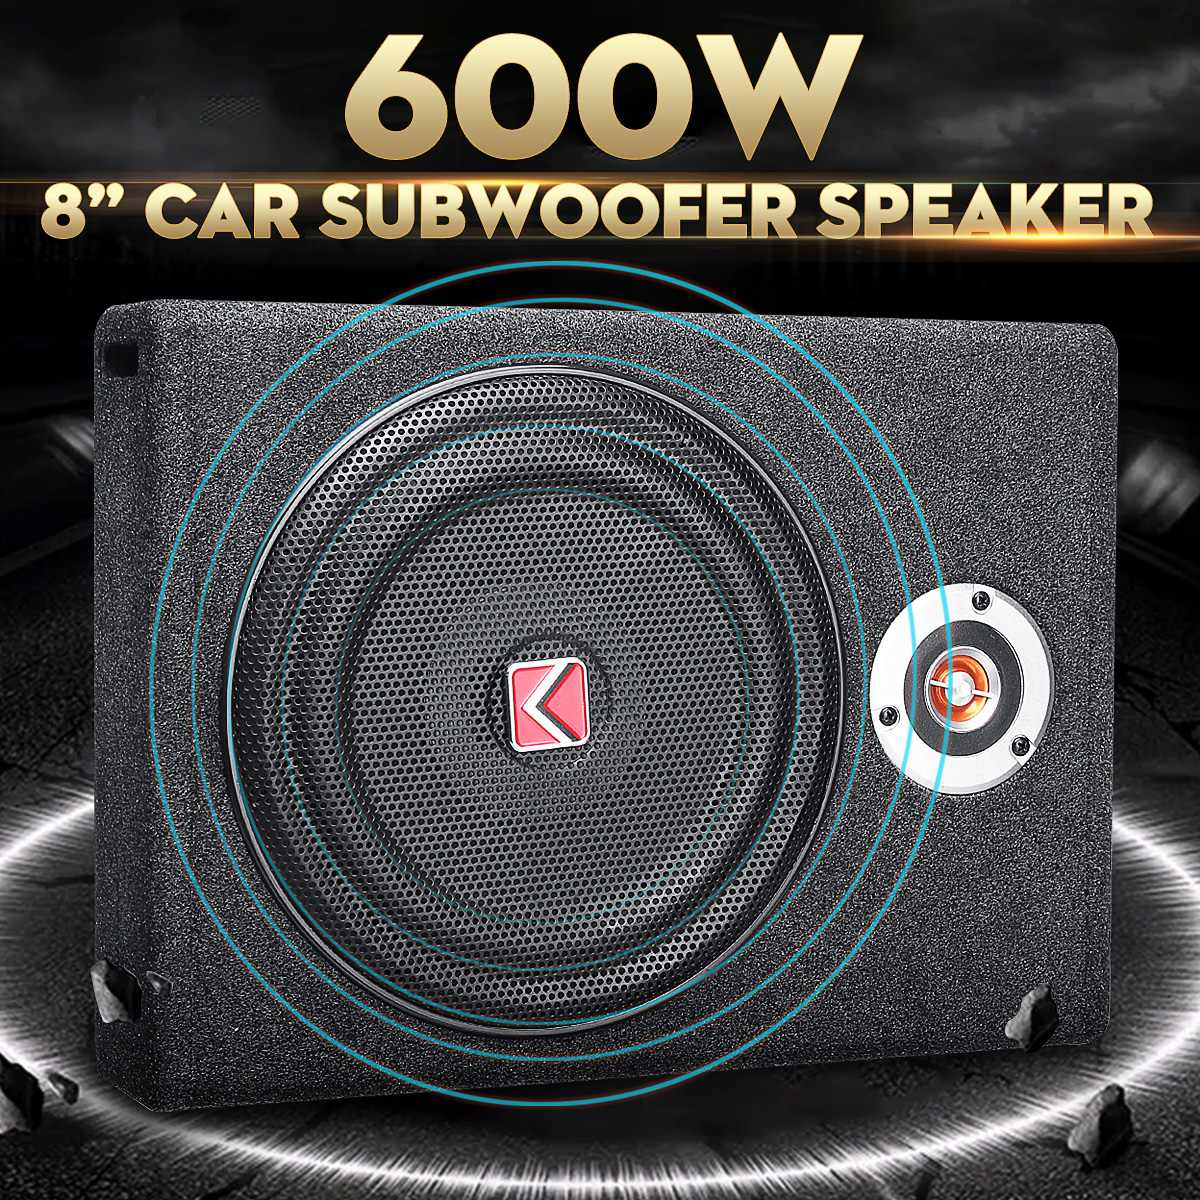 600W Car Subwoofers Speaker 8'' Subwoofer Car Active Slim Under Seat Speaker Stereo Bass Horn Audio Power Amplifier speakers